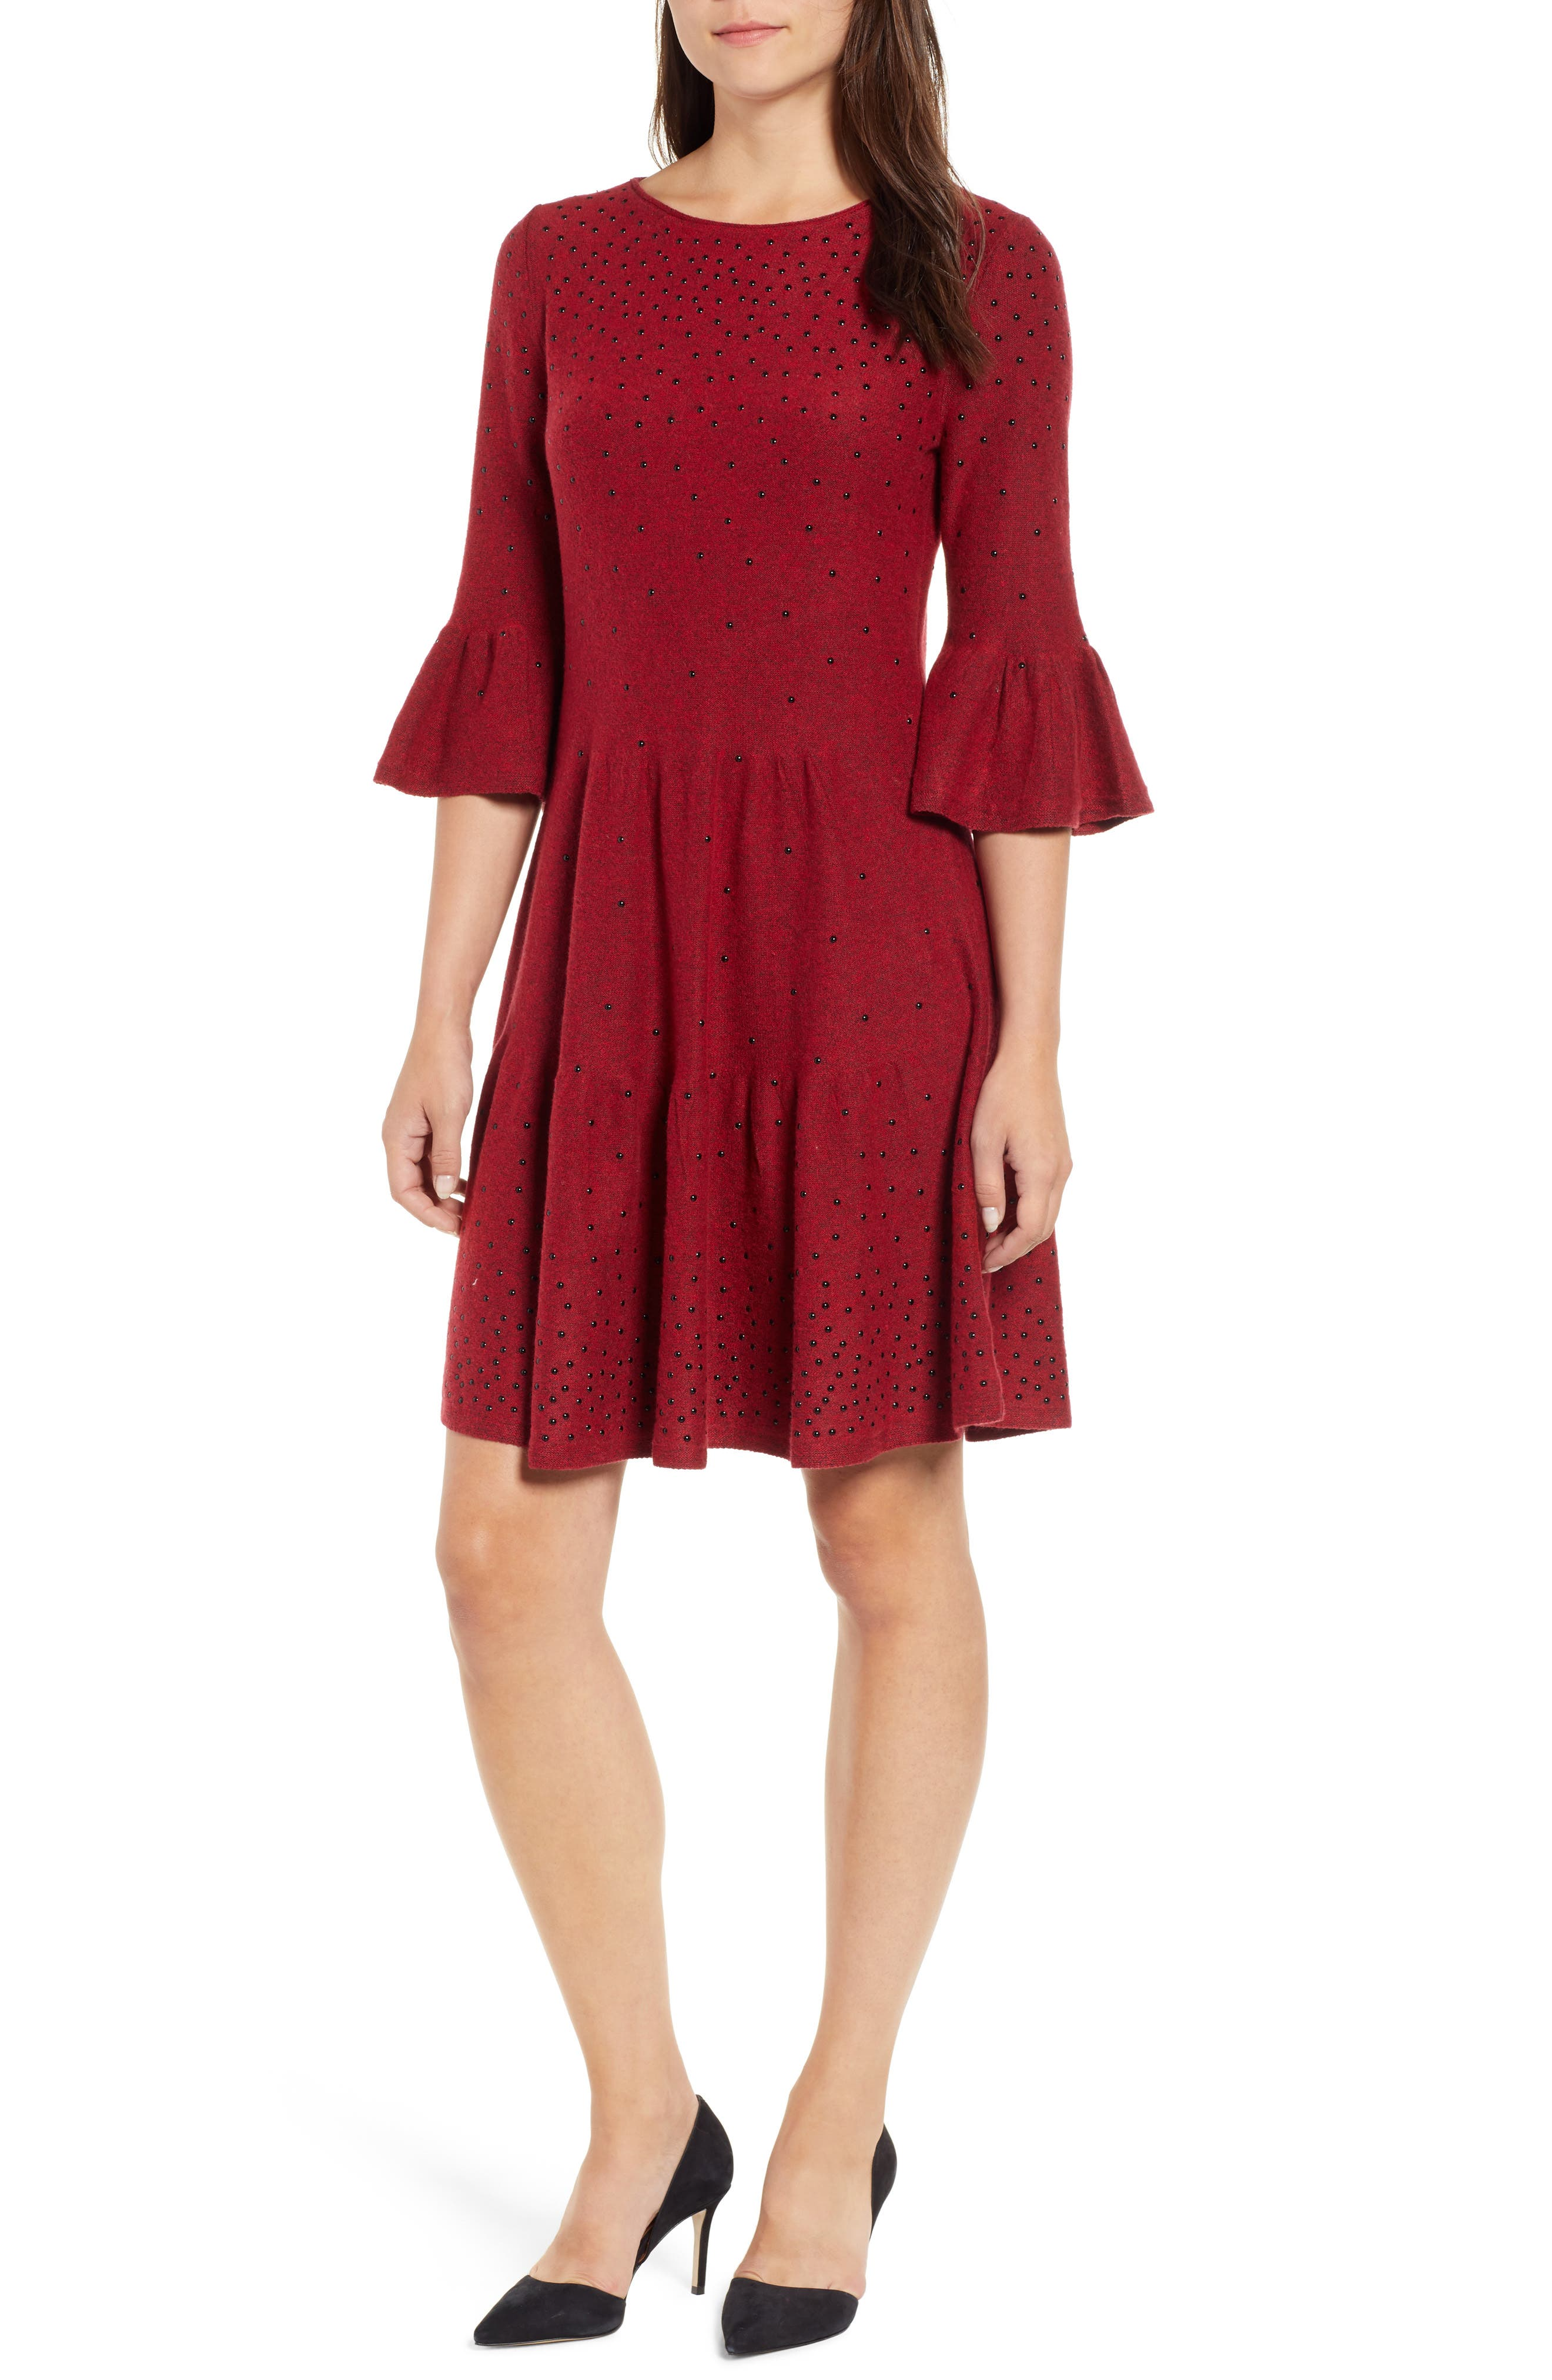 NIC AND ZOE Nic + Zoe Celestial Stud Bell Sleeve Dress in Ruby